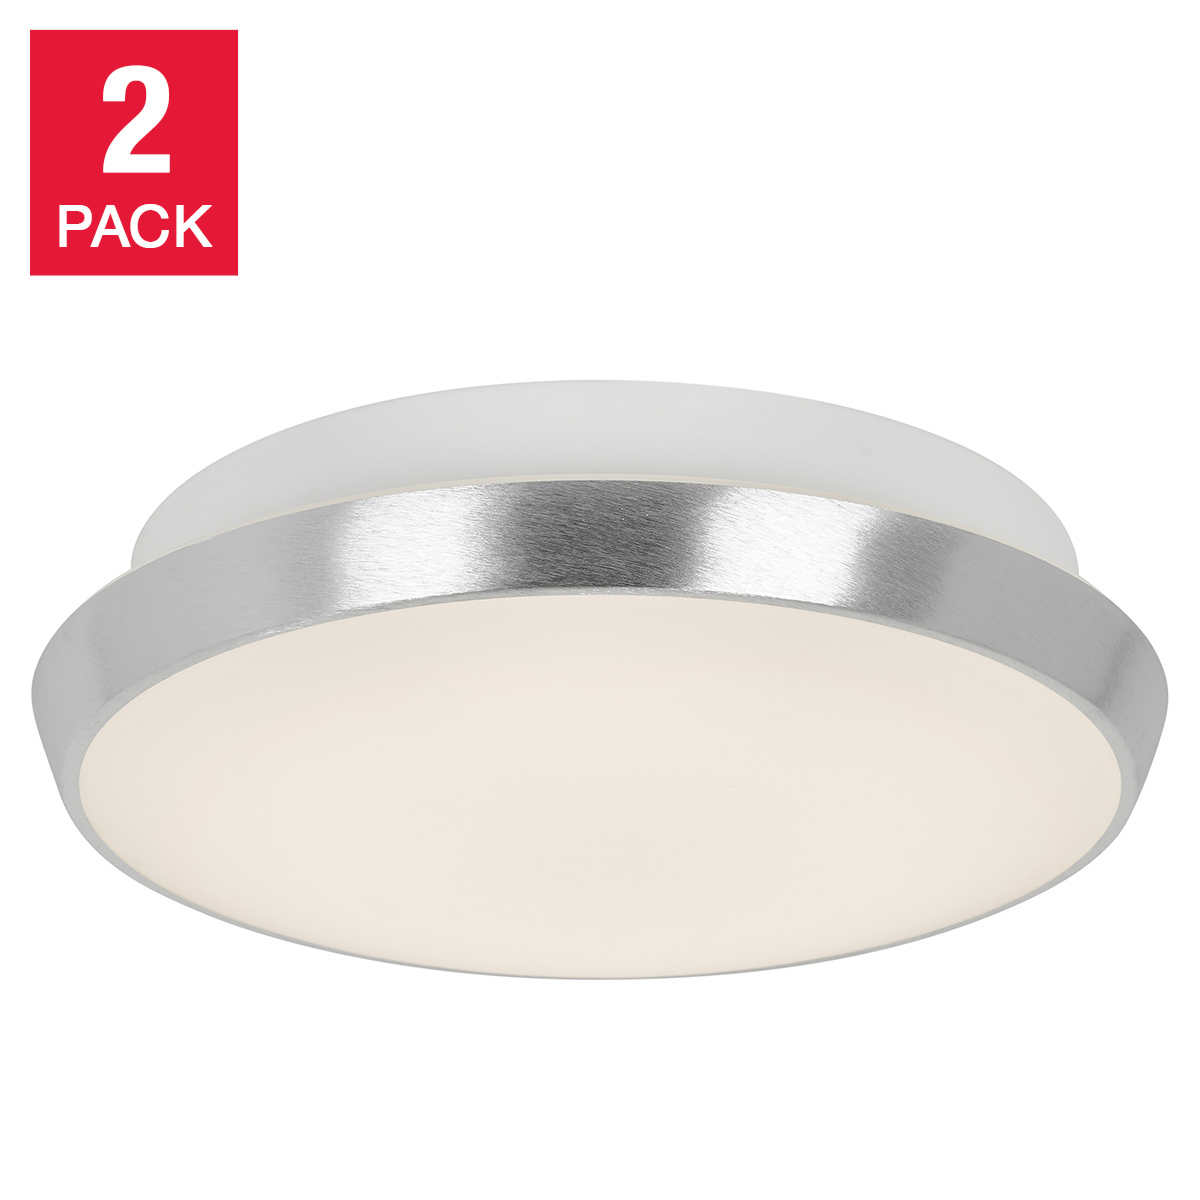 lowes shop light wall lighting at com bathroom fixture